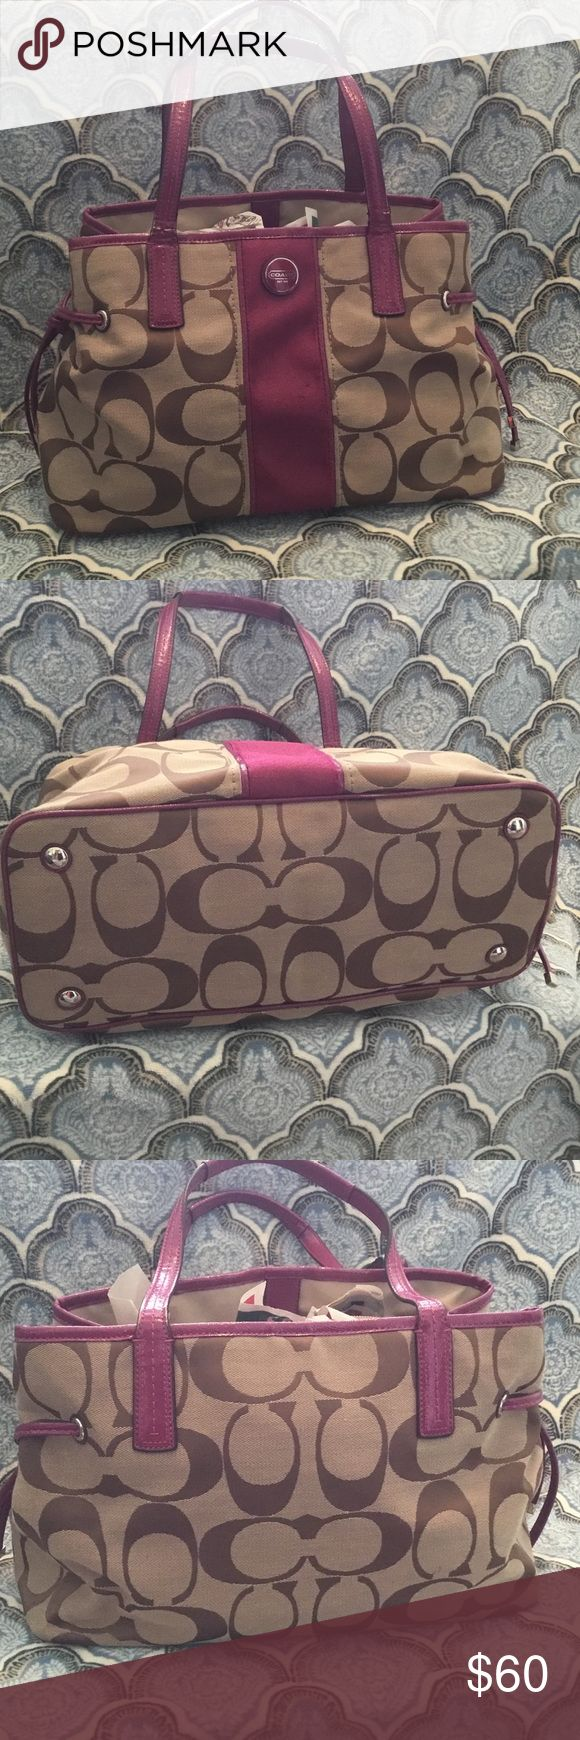 Large Coach shoulder bag Large tan and pink Coach shoulder bag. In awesome condition! Contains two zippered pockets and spots for your phone and wallet. Magnetic clasps to close! Super cute for spring! Coach Bags Shoulder Bags